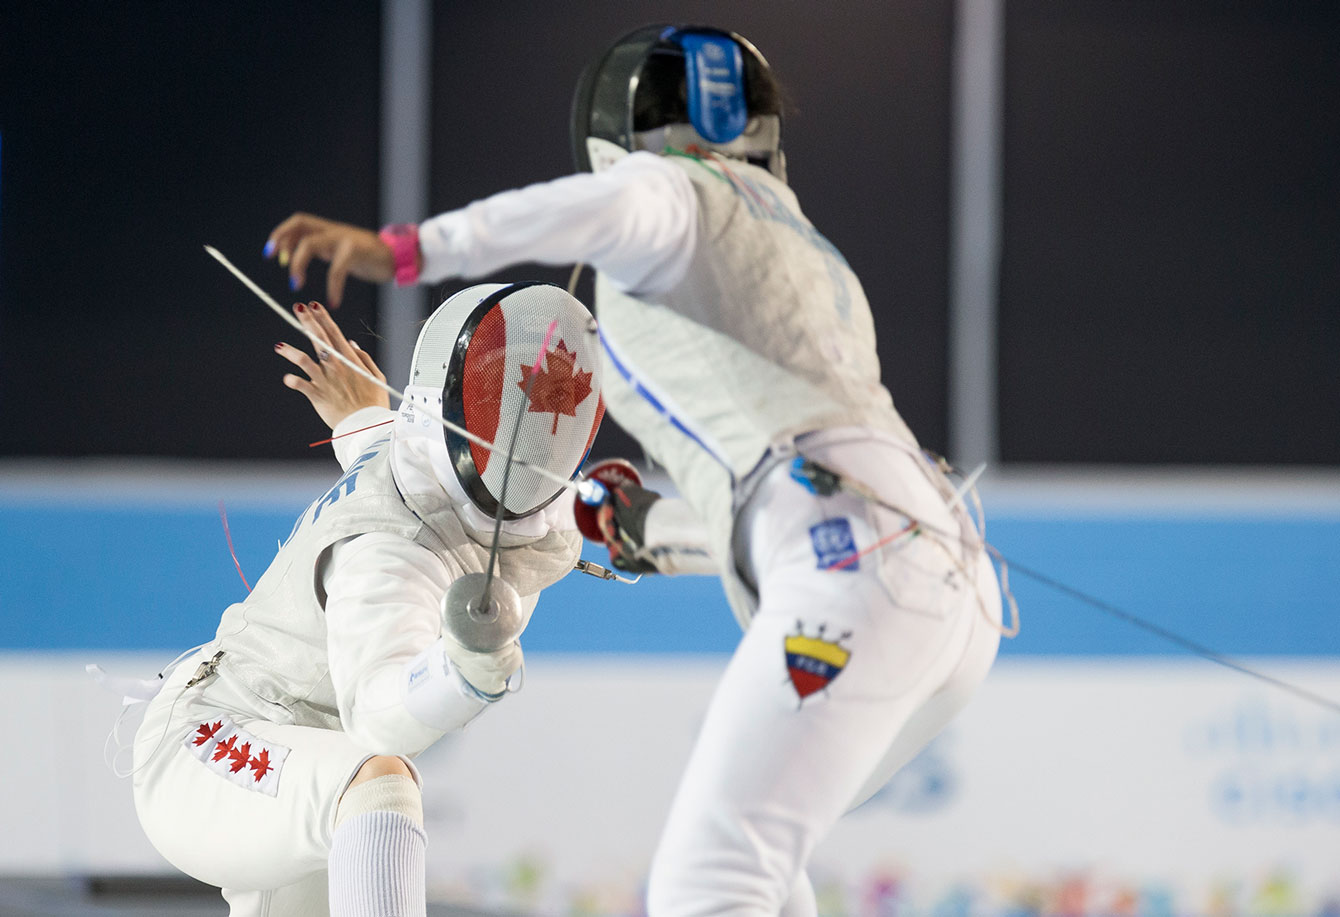 Alanna Goldie won TO2015 bronze in the women's individual foil on July 22.